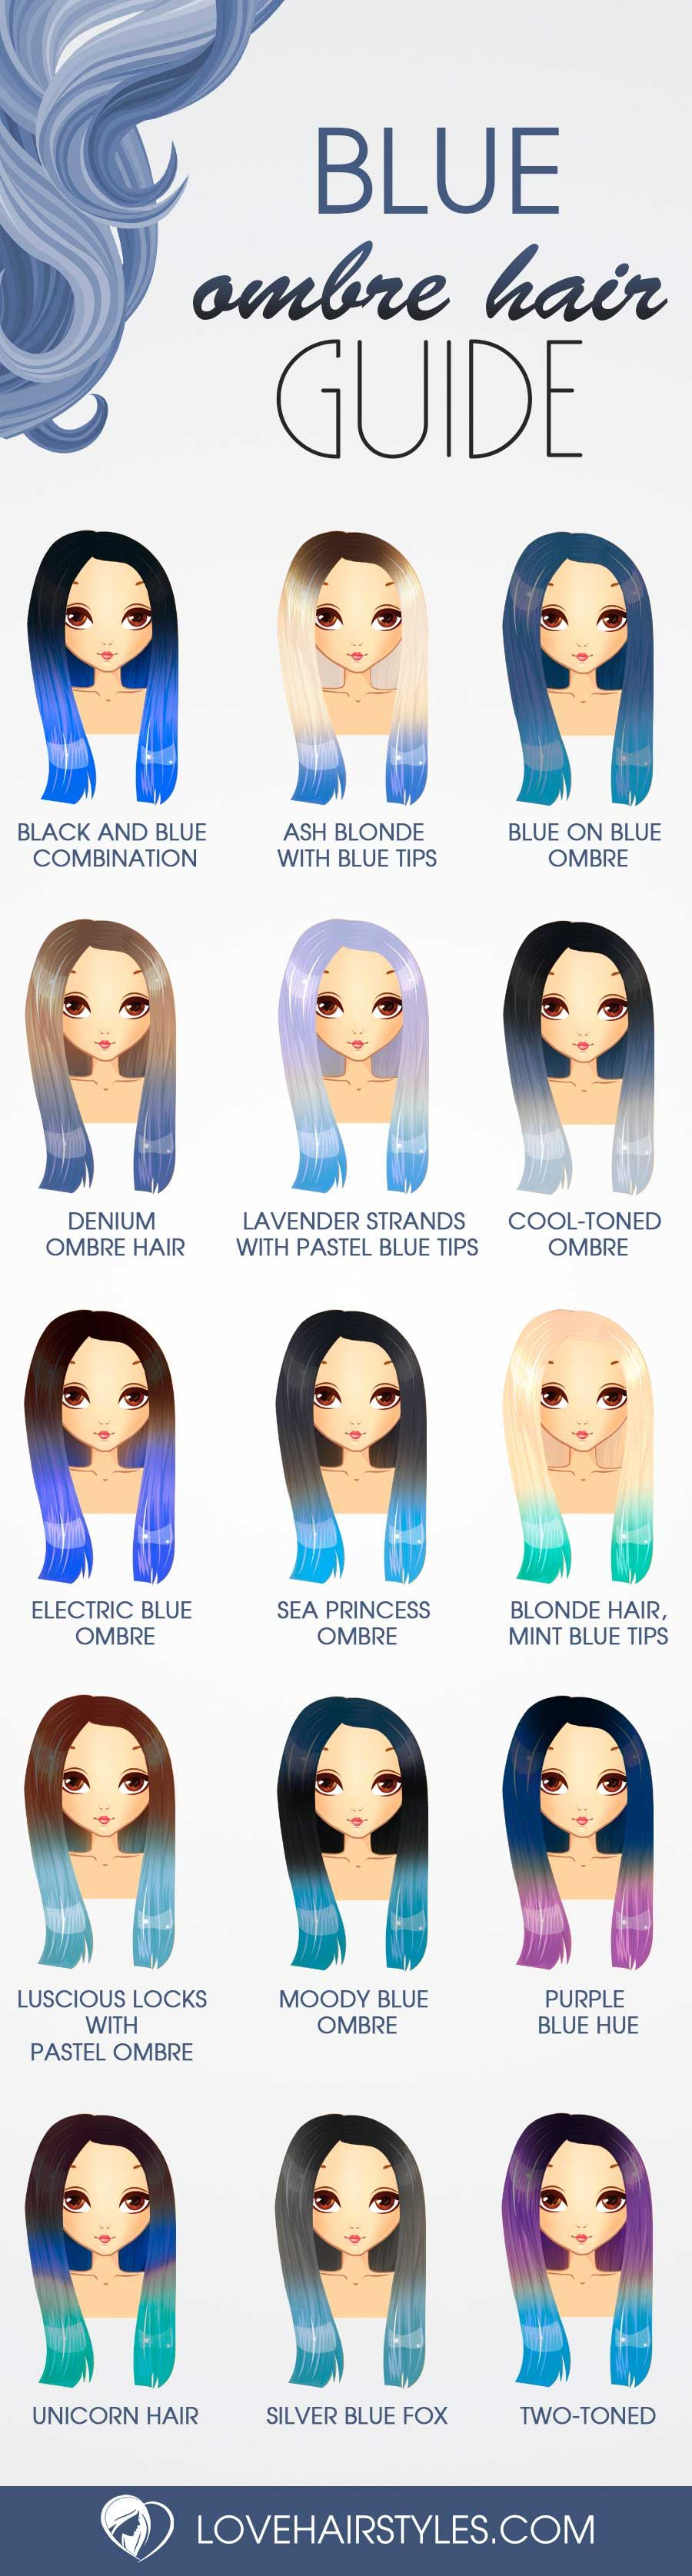 trendy styles for blue ombre hair blue ombre hair blue ombre